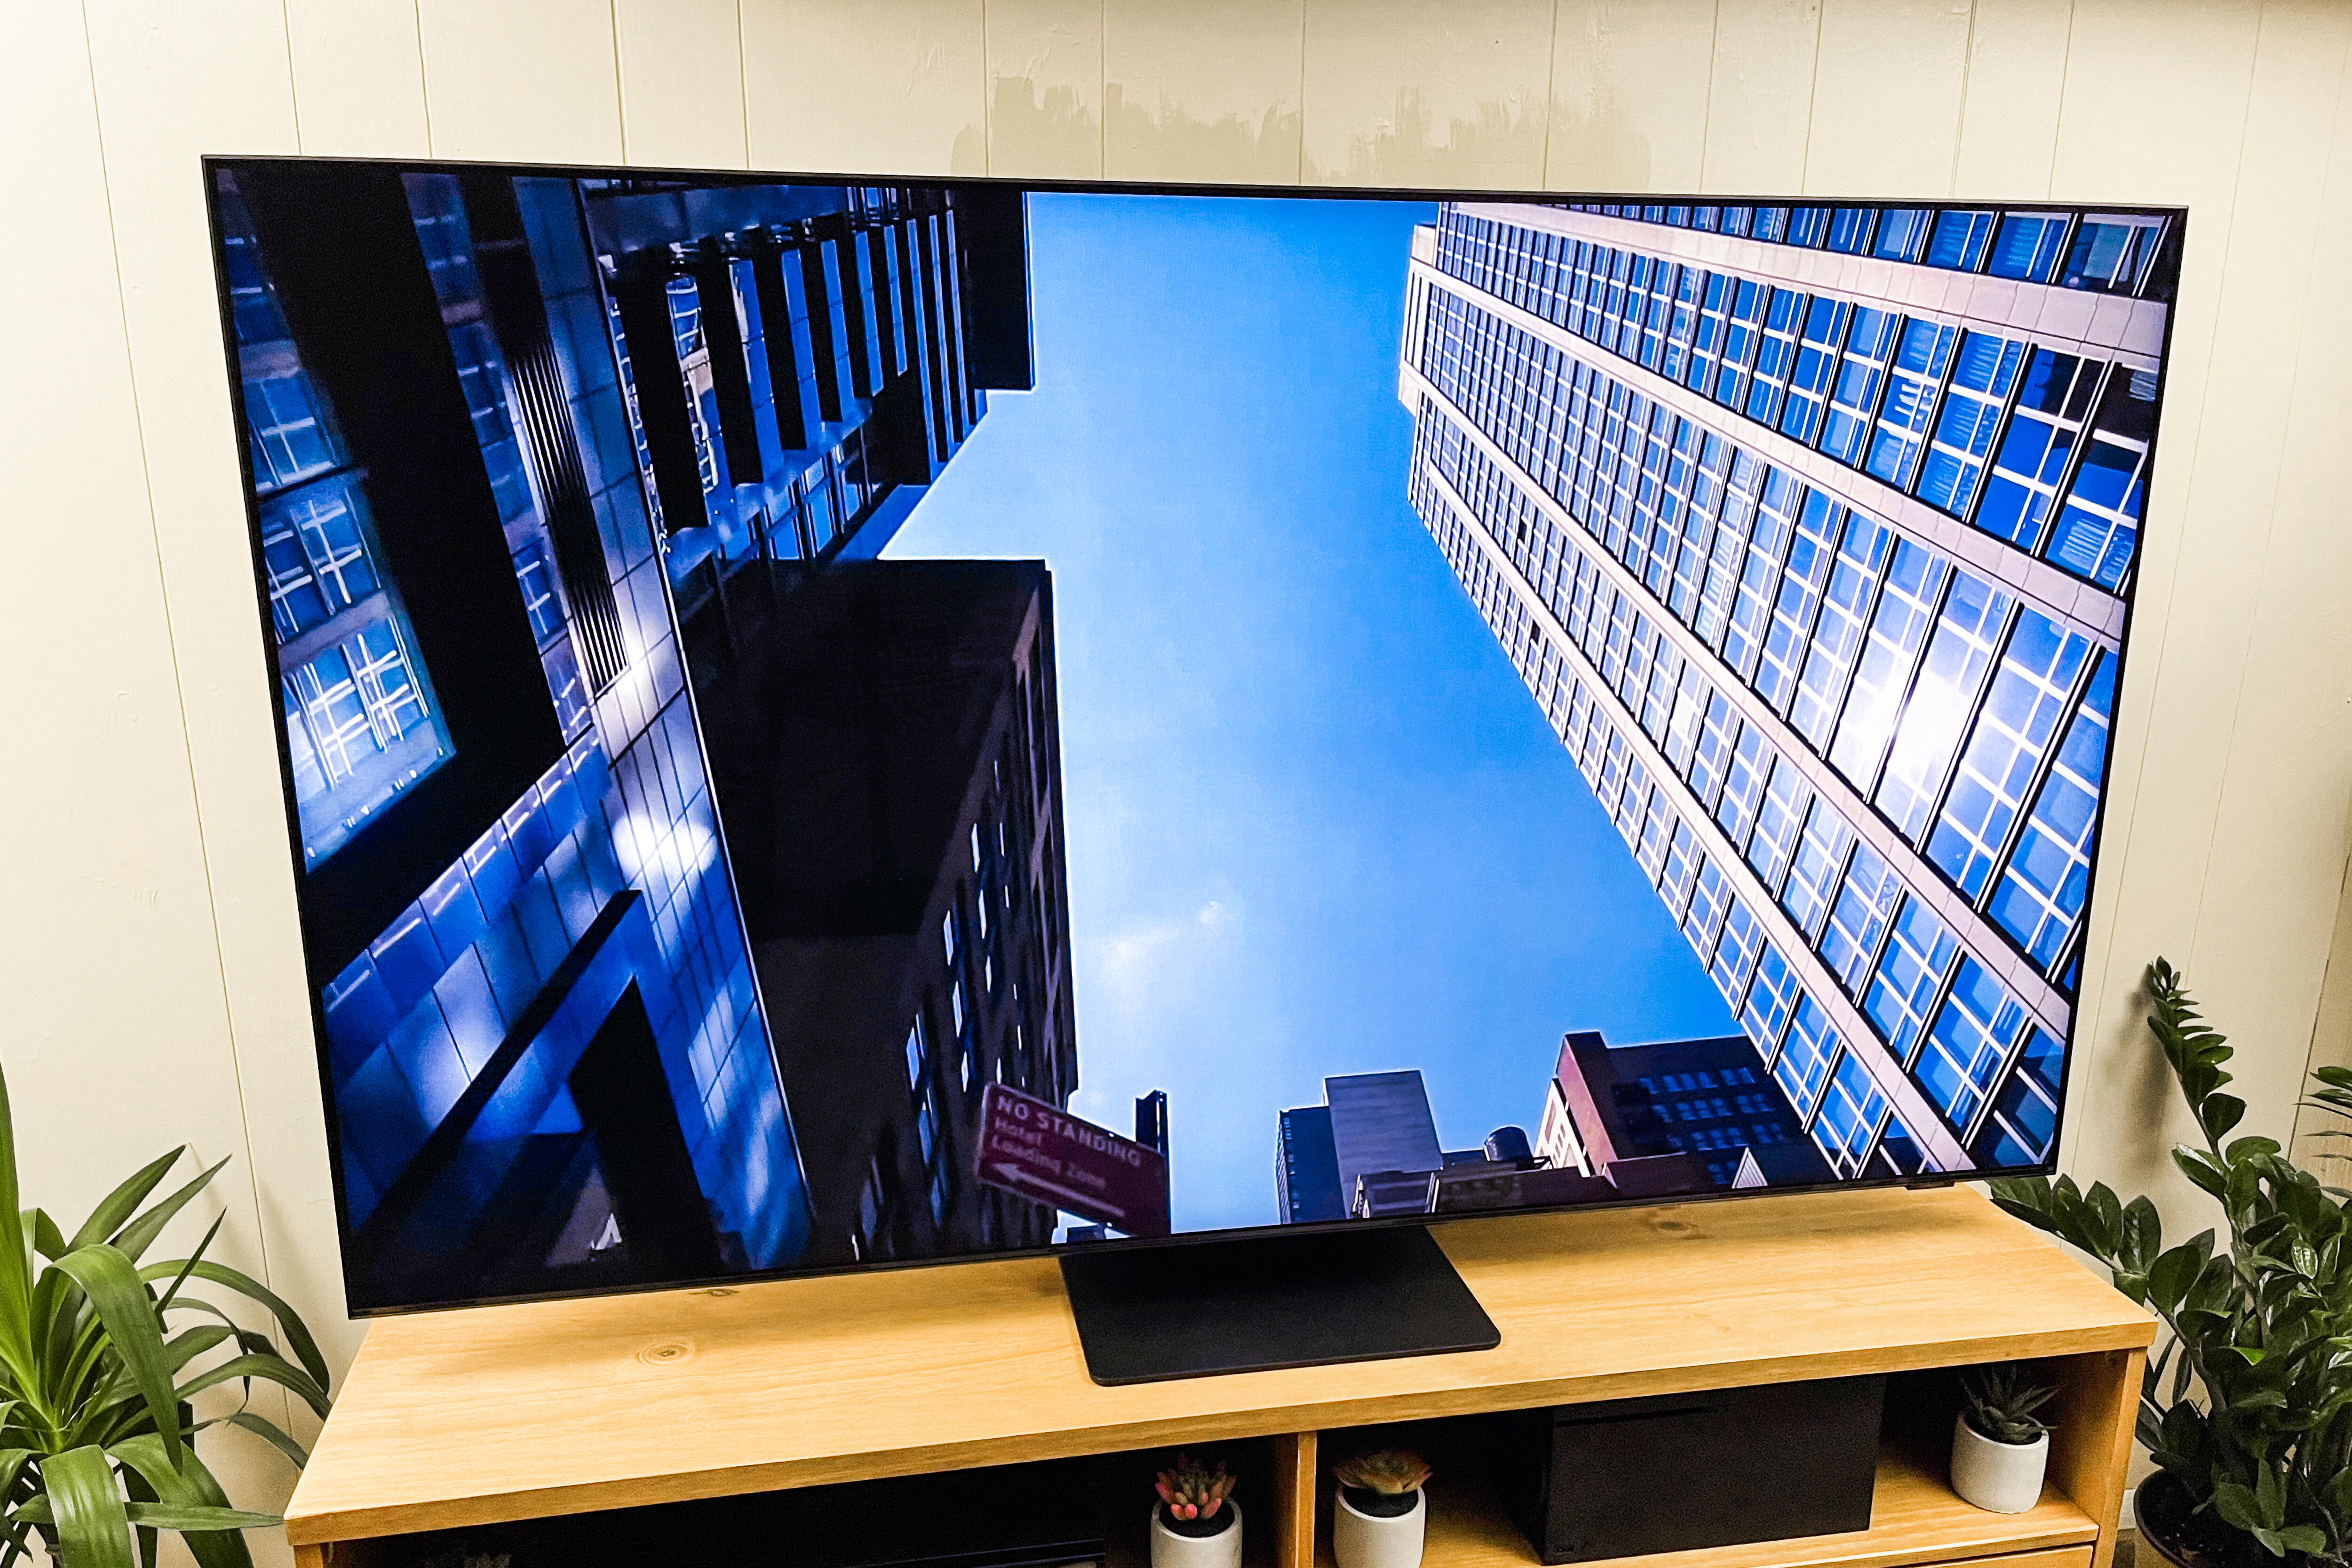 TV picture settings: 9 quick tips to get better image quality now